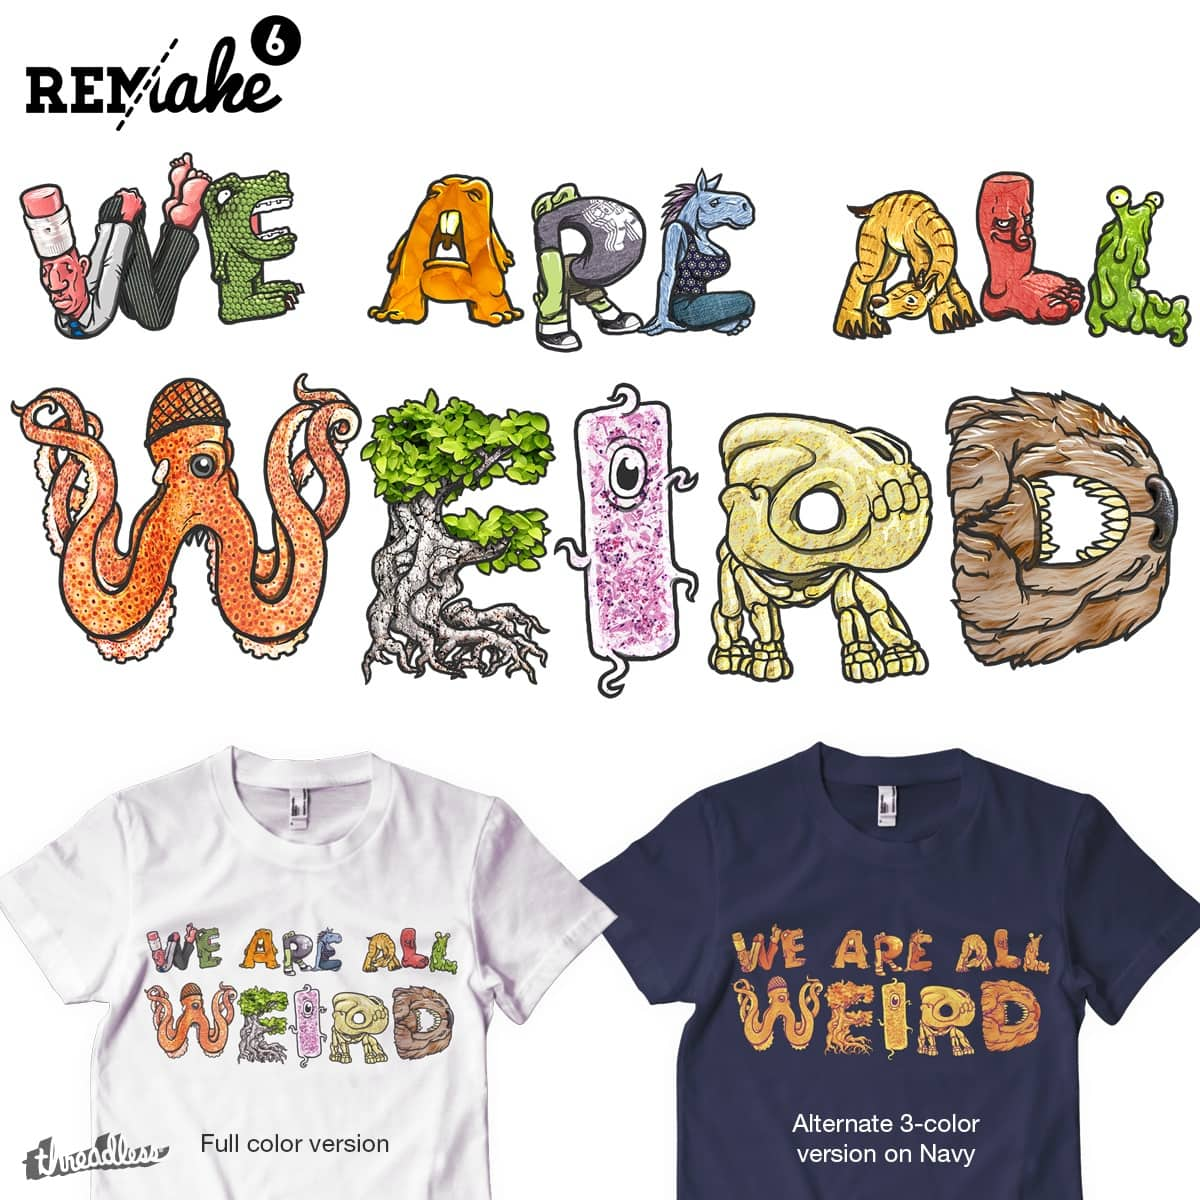 We Are All Weird by Musarter and mike bautista on Threadless